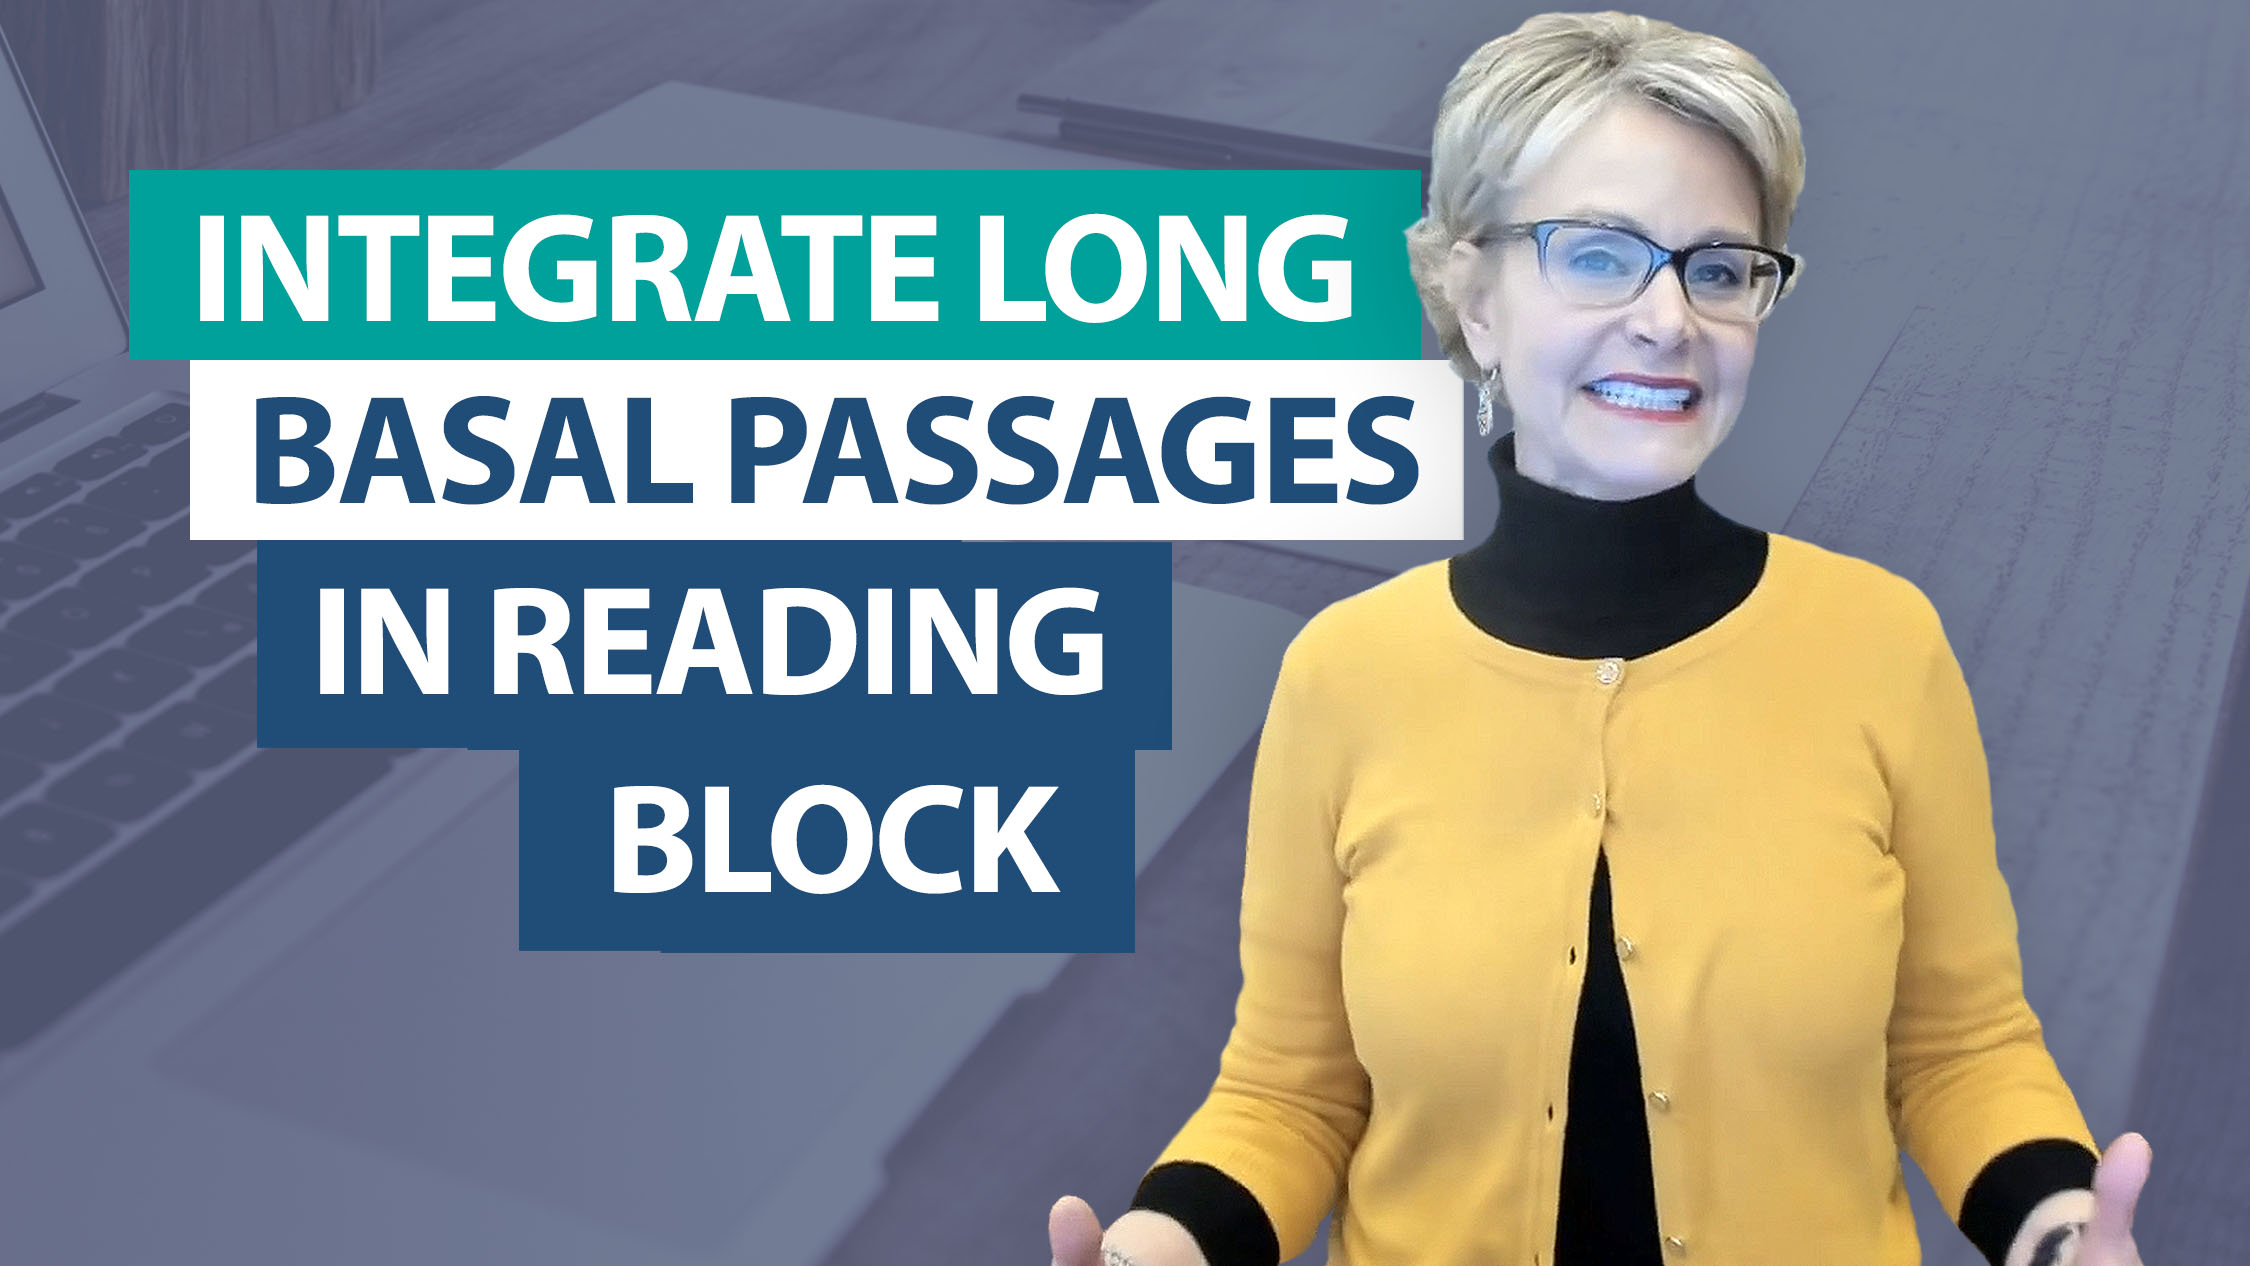 How do you integrate long passages of basal into the reading block